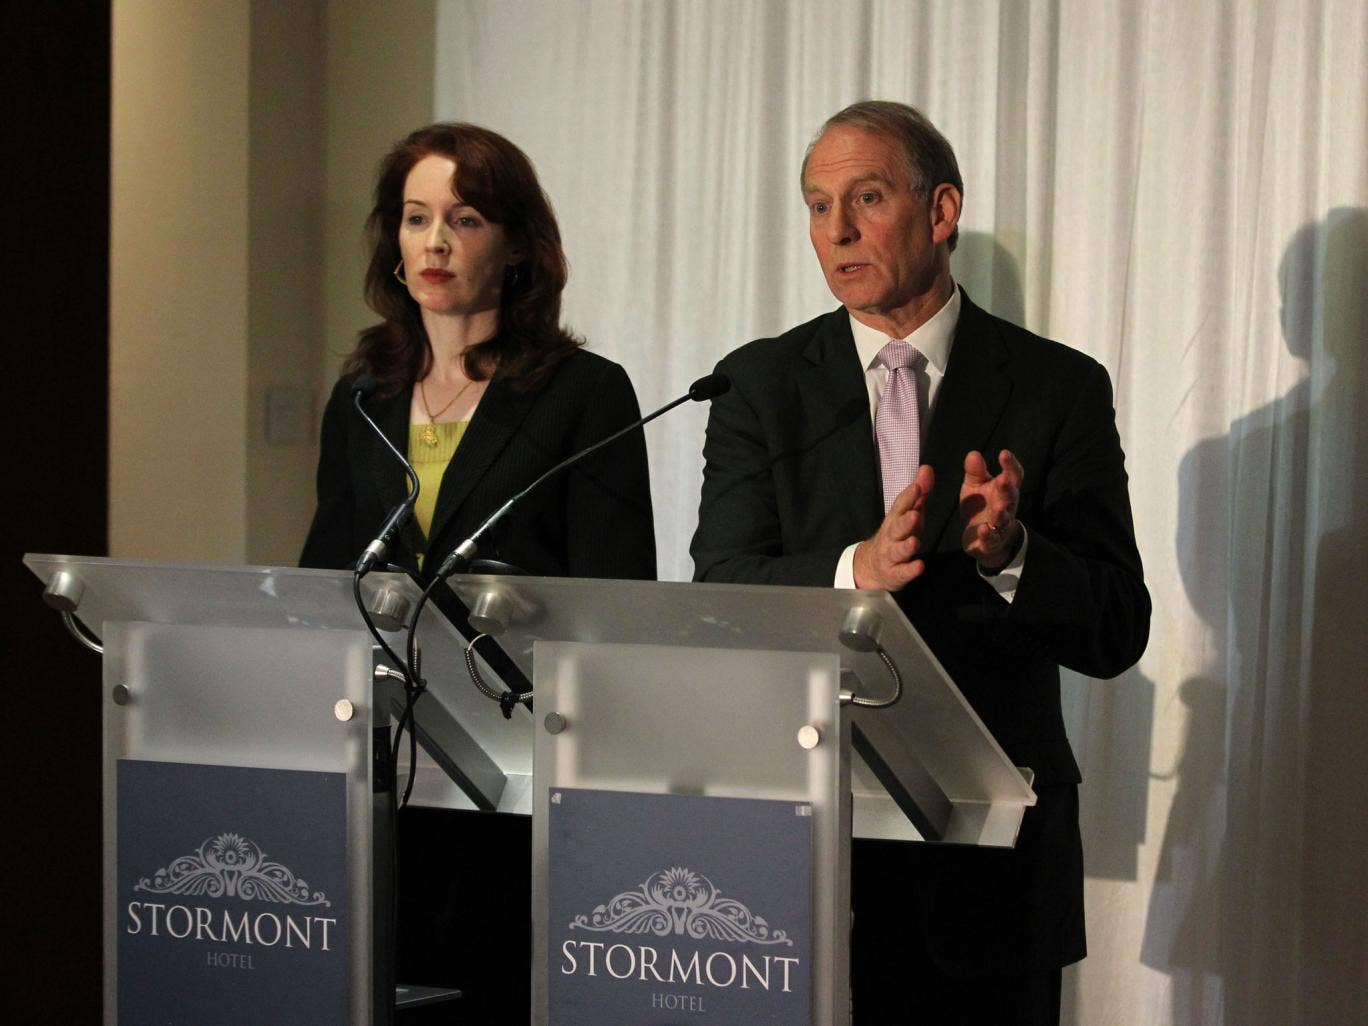 Former US diplomat Richard Haass and co-chair Meghan O'Sullivan speak at the Stormont hotel in Belfast. Overnight talks failed to find agreement on any of three topics